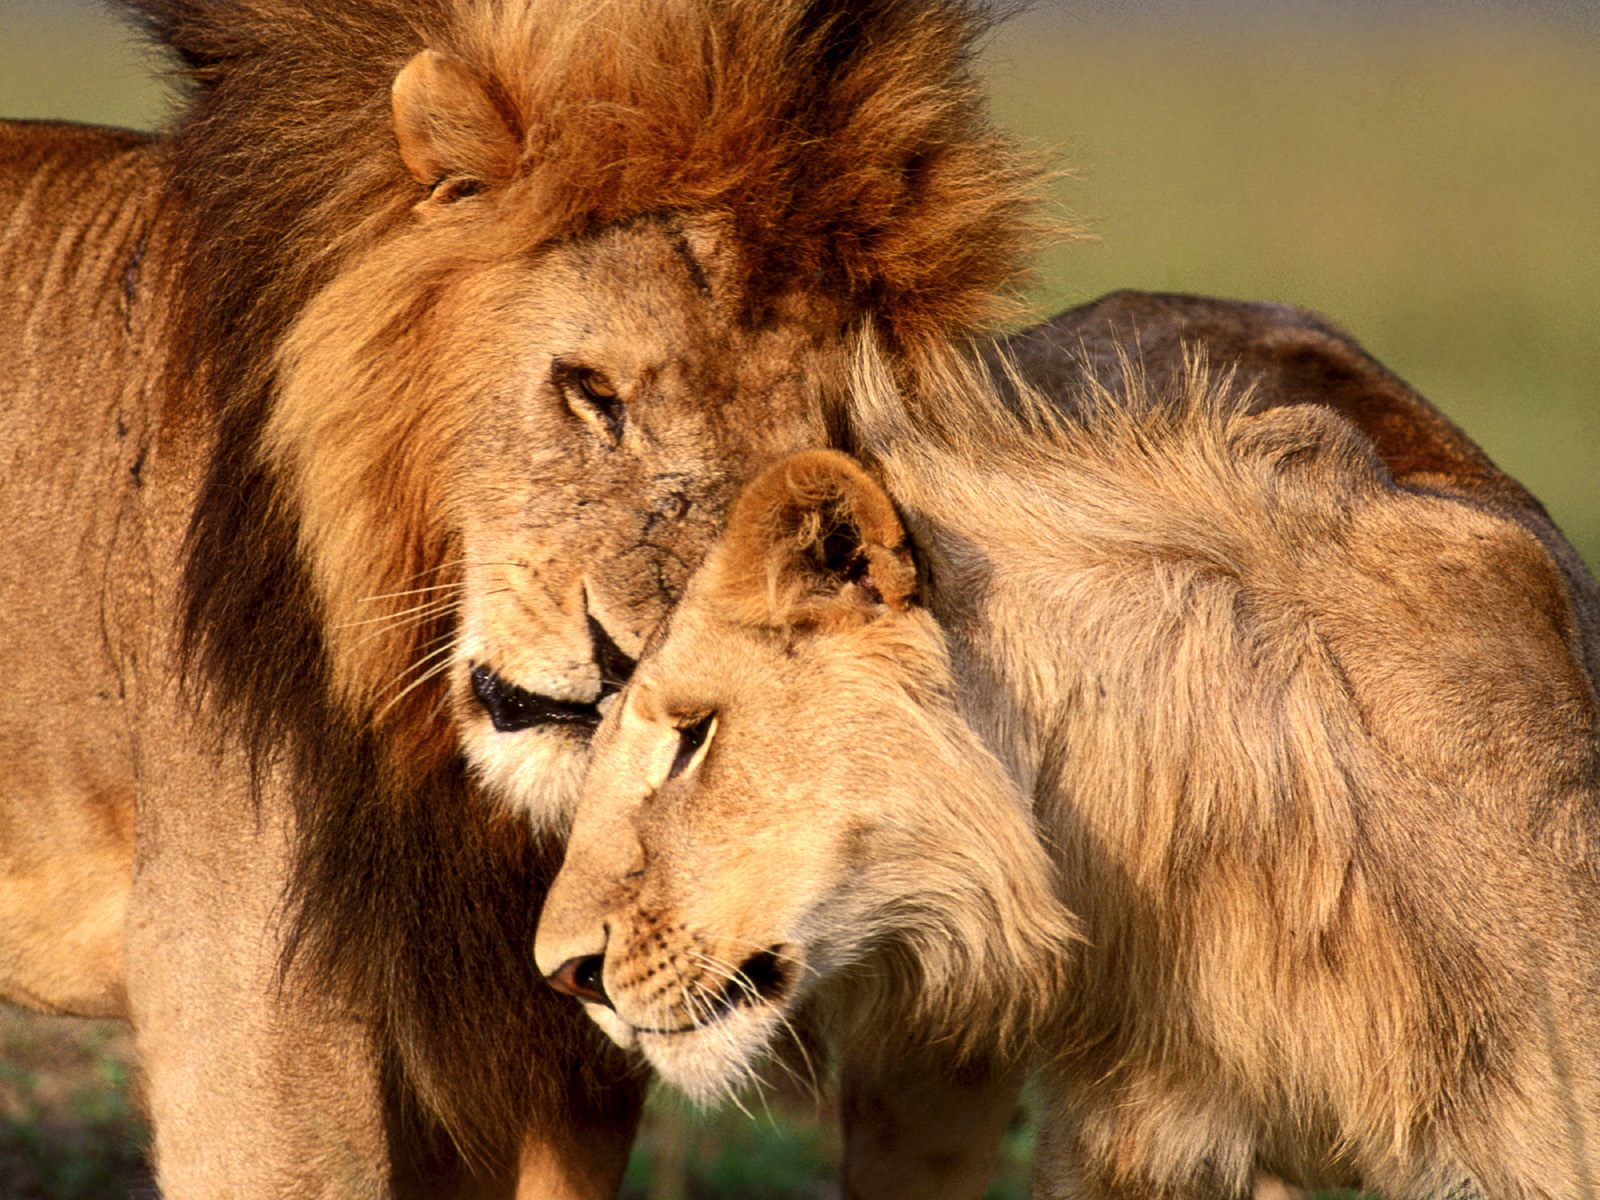 http://4.bp.blogspot.com/-81T5cX4GtPE/TdsNyR_b23I/AAAAAAAAAWo/Bavw6Wh5uw8/s1600/lion-affection-wallpapers_12835_1600x1200.jpg